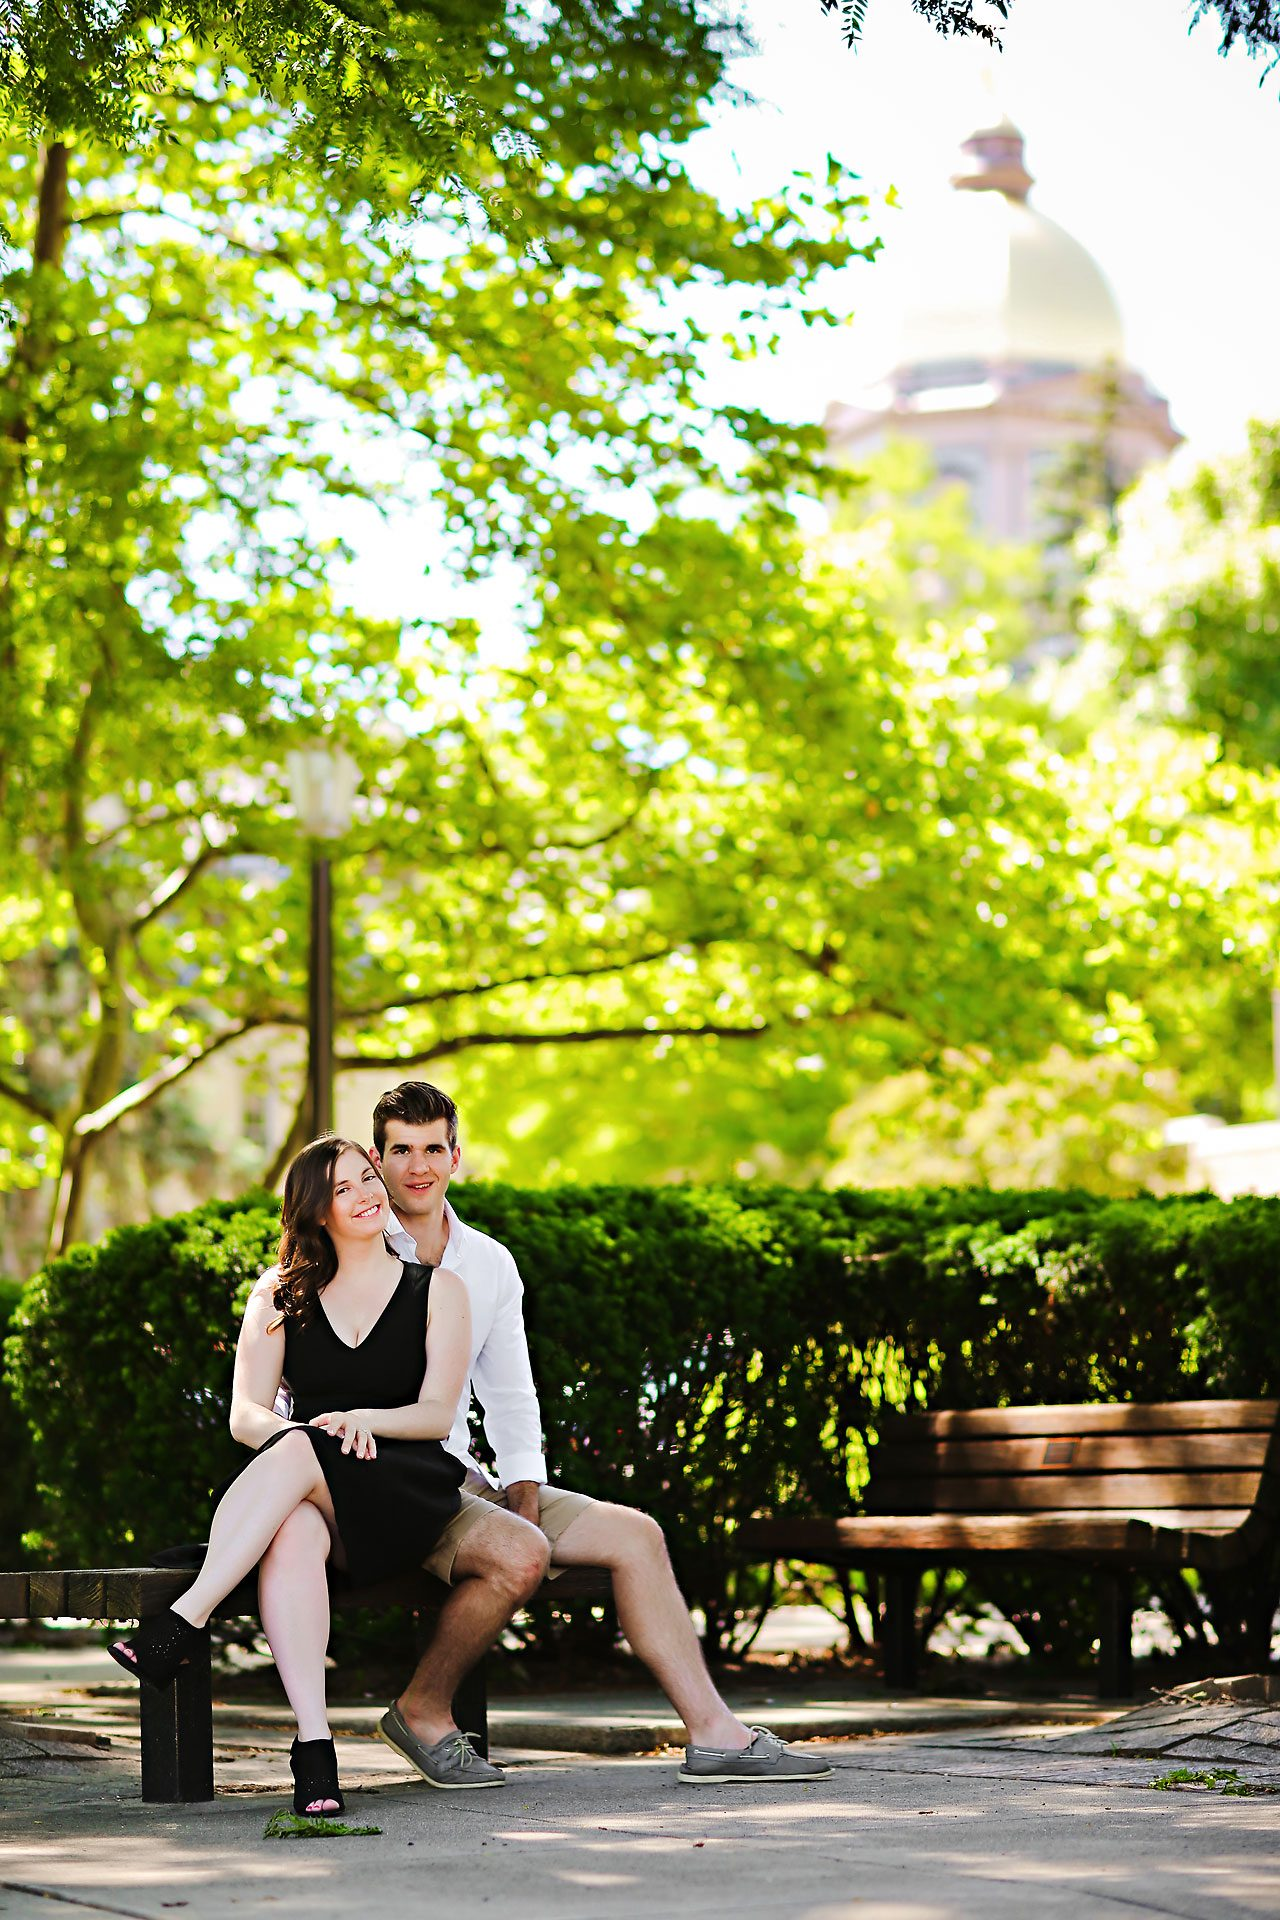 Jessie Chris Notre Dame Engagement Session 022